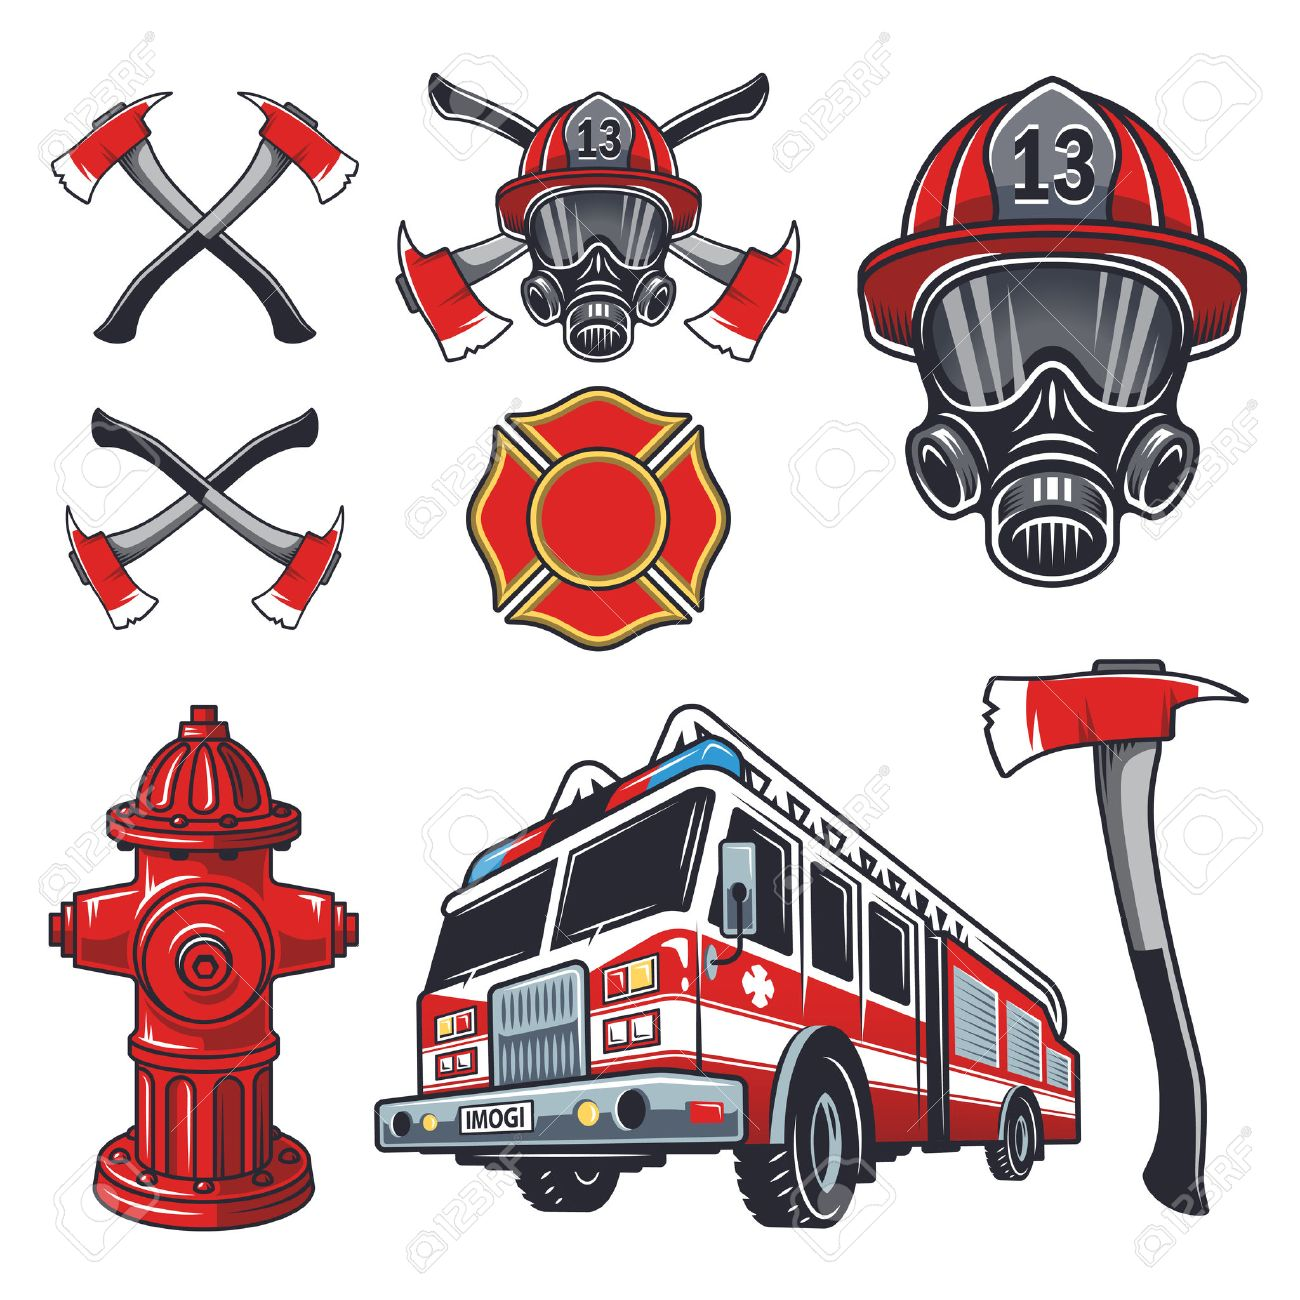 17666 firefighter stock vector illustration and royalty free set of designed firefighter elements coloured buycottarizona Choice Image